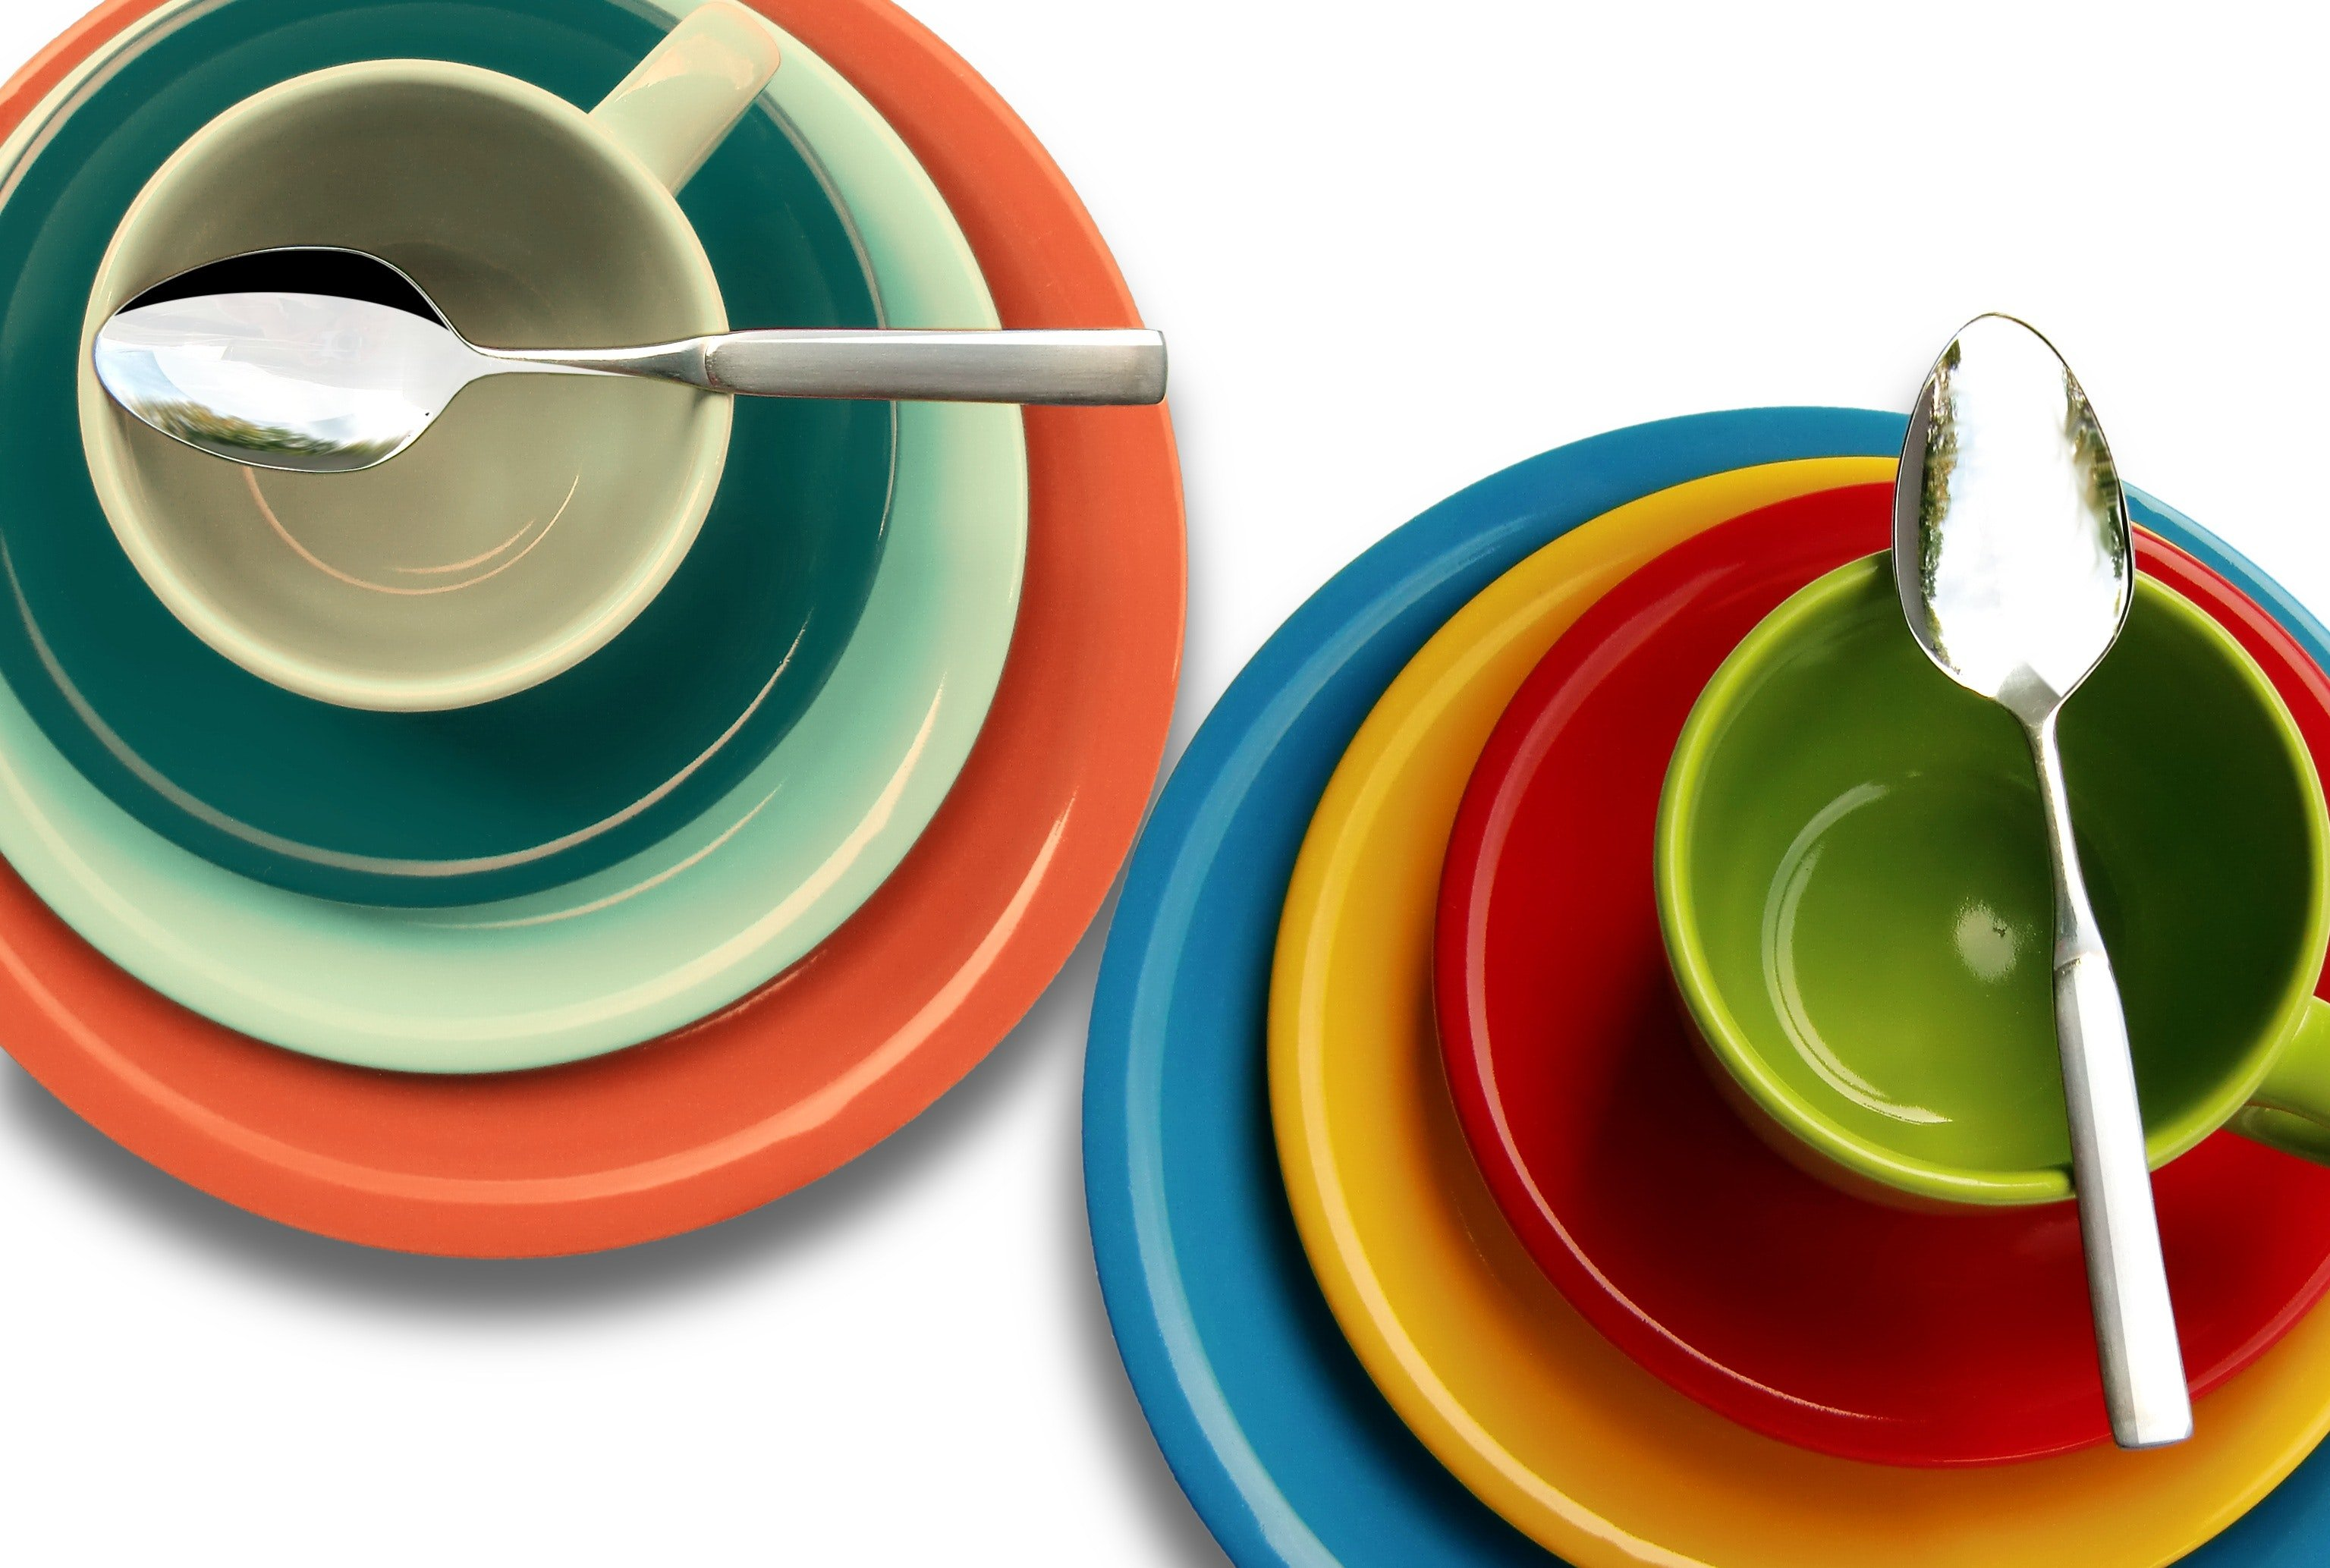 Pictured - A photo of colorful plates and cups | Source: Pexels